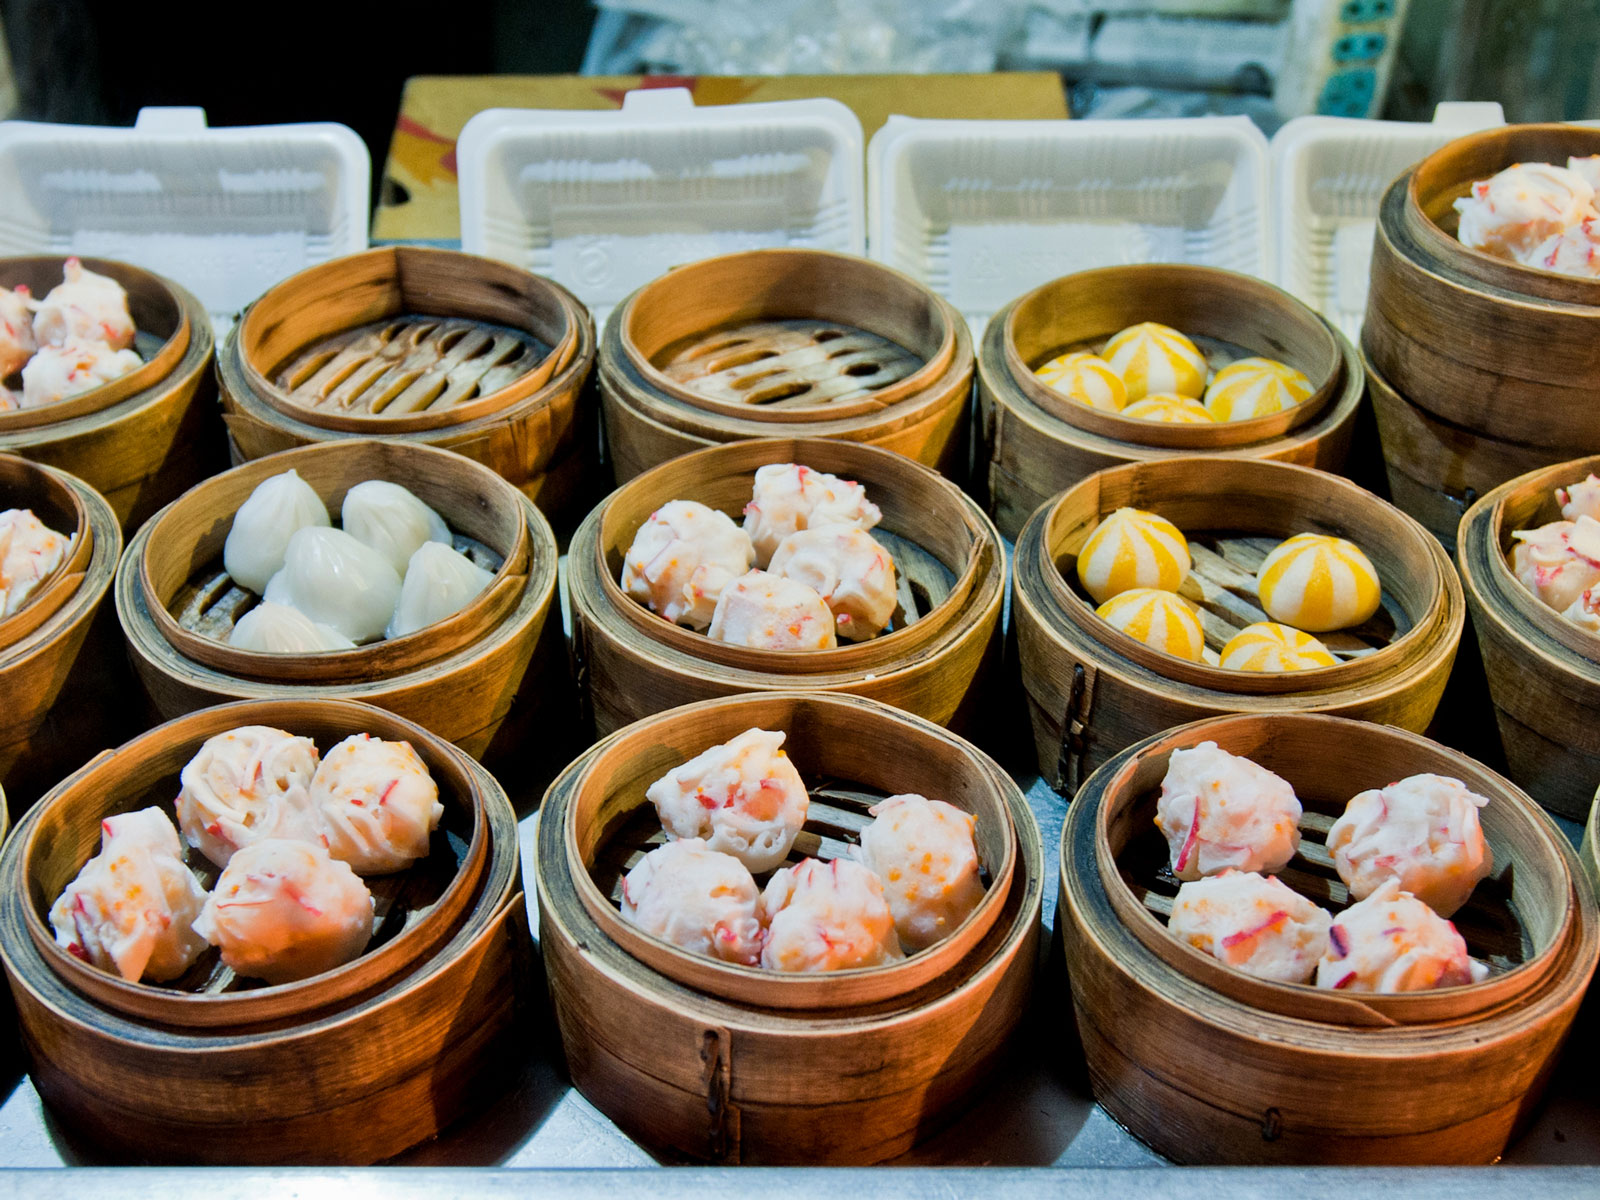 The Top 10 Food Experiences in the World, According to TripAdvisor